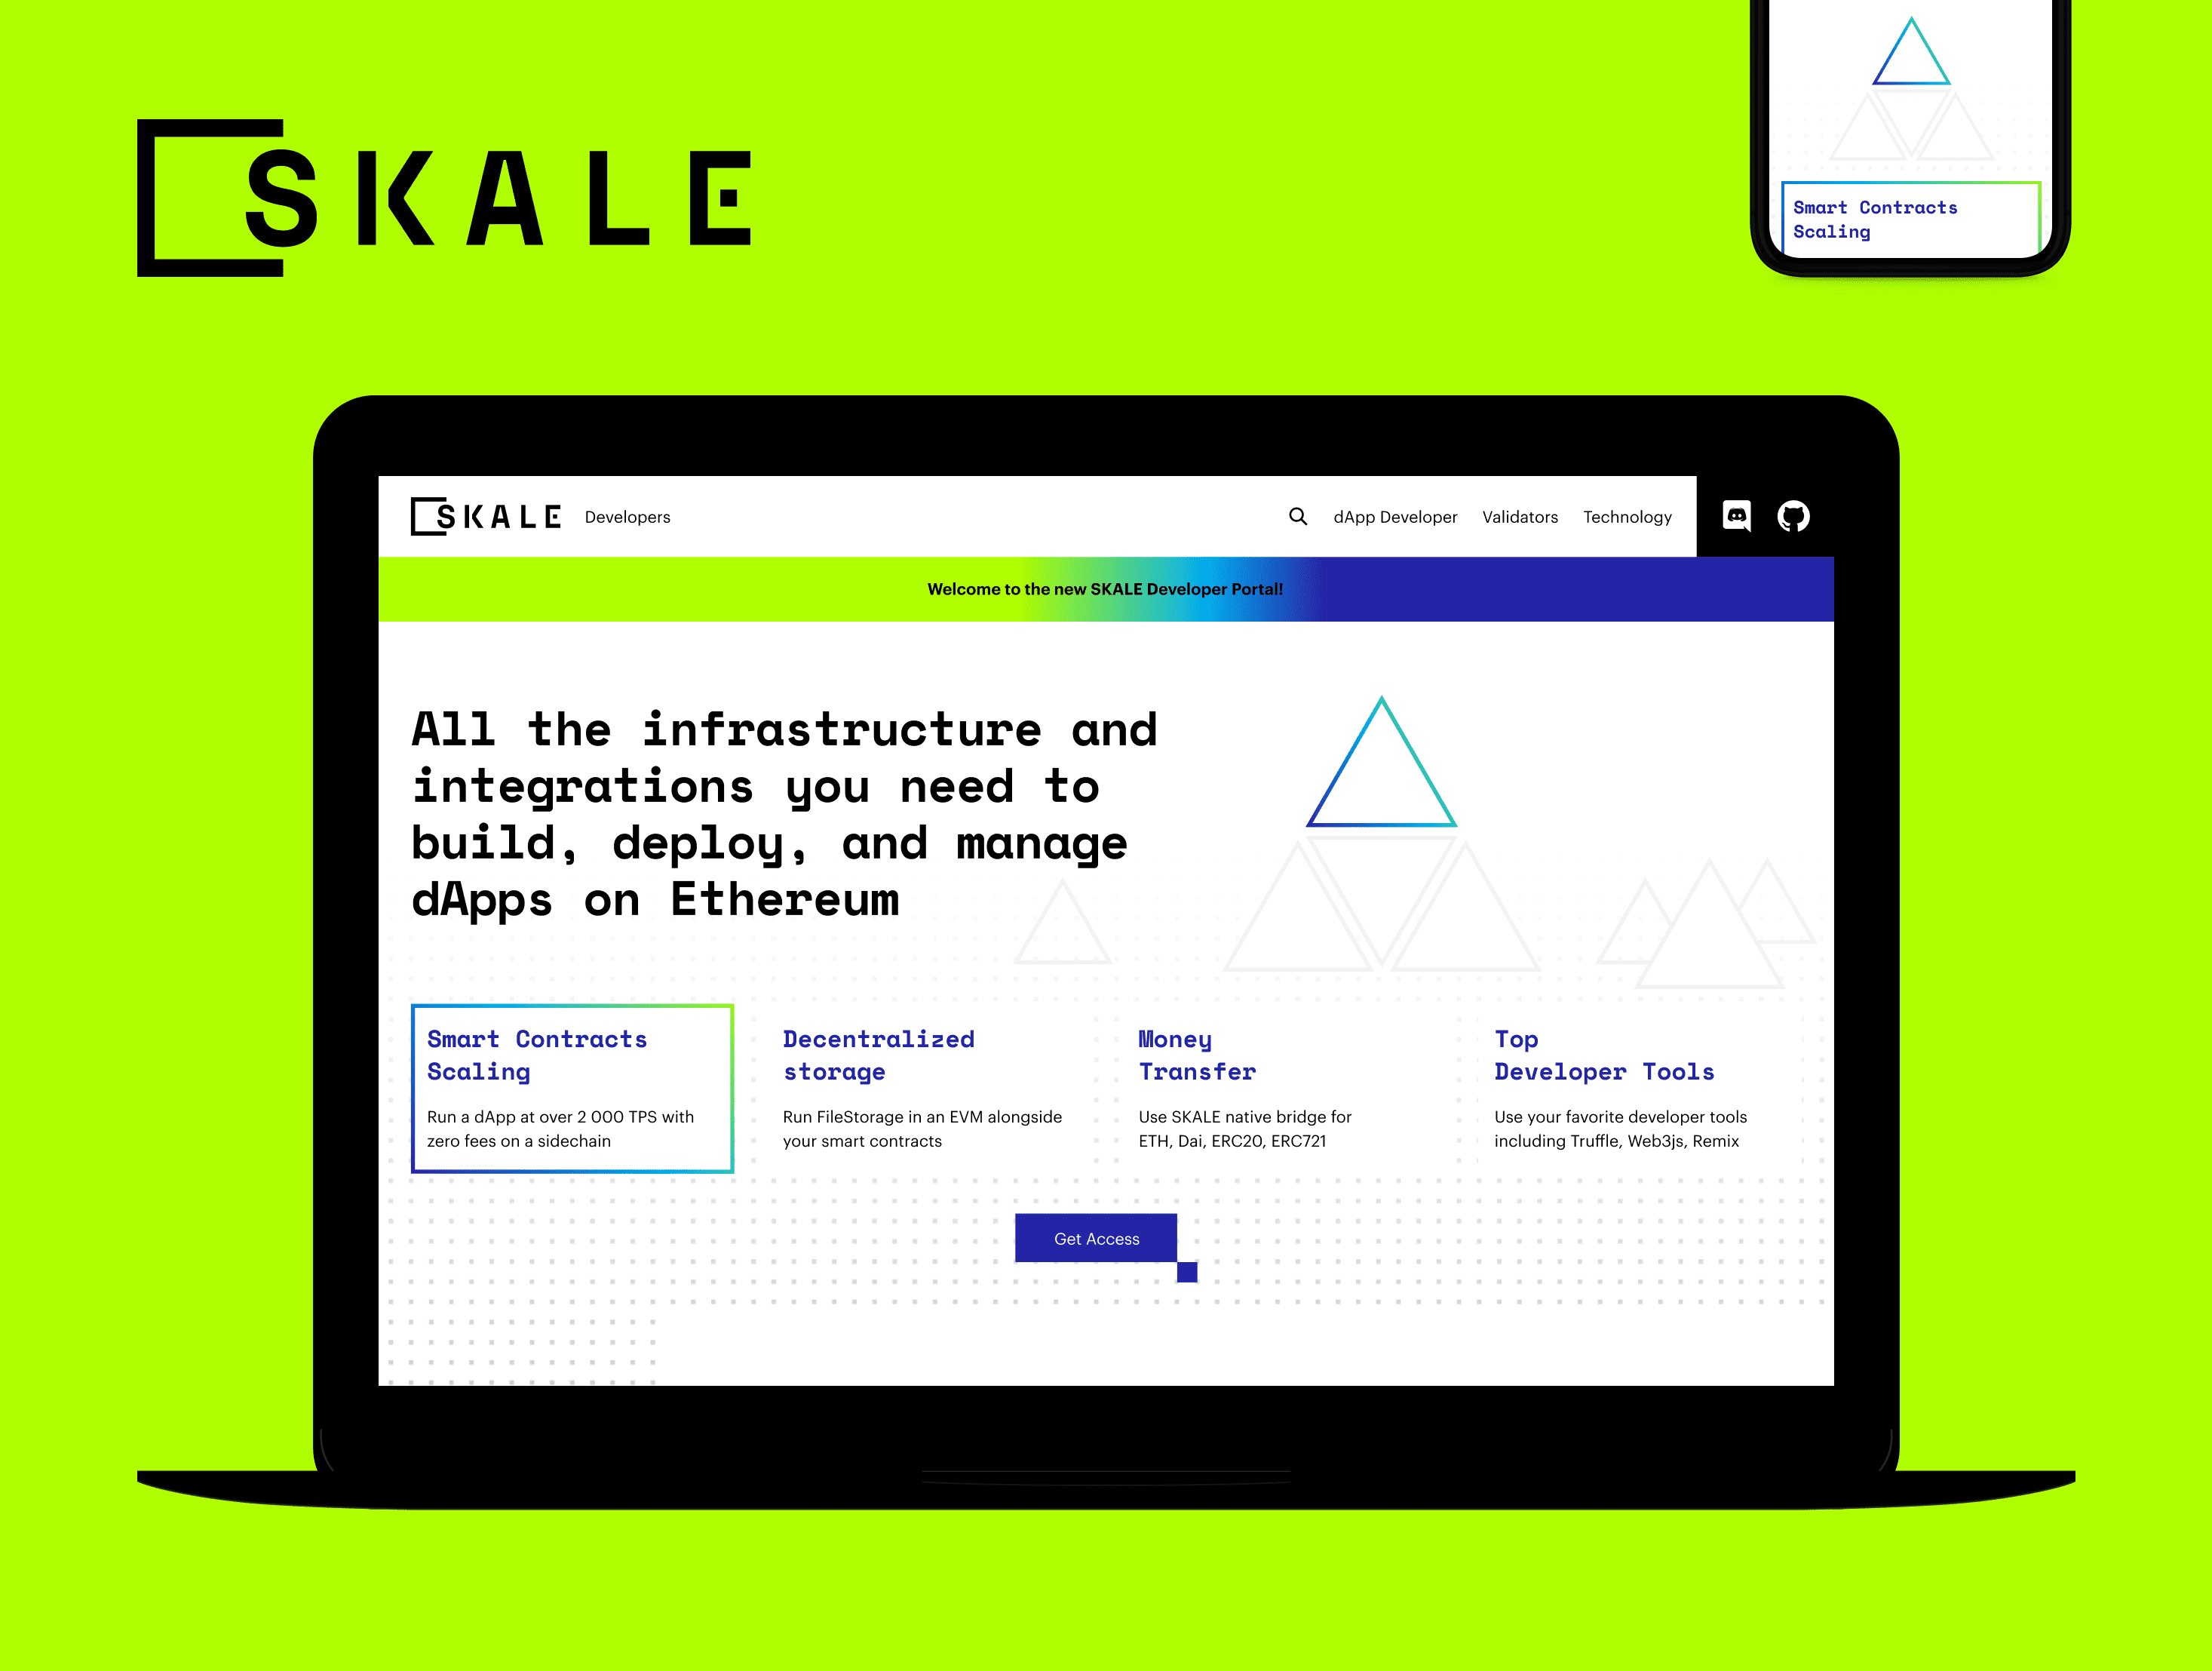 SKALE labs developers